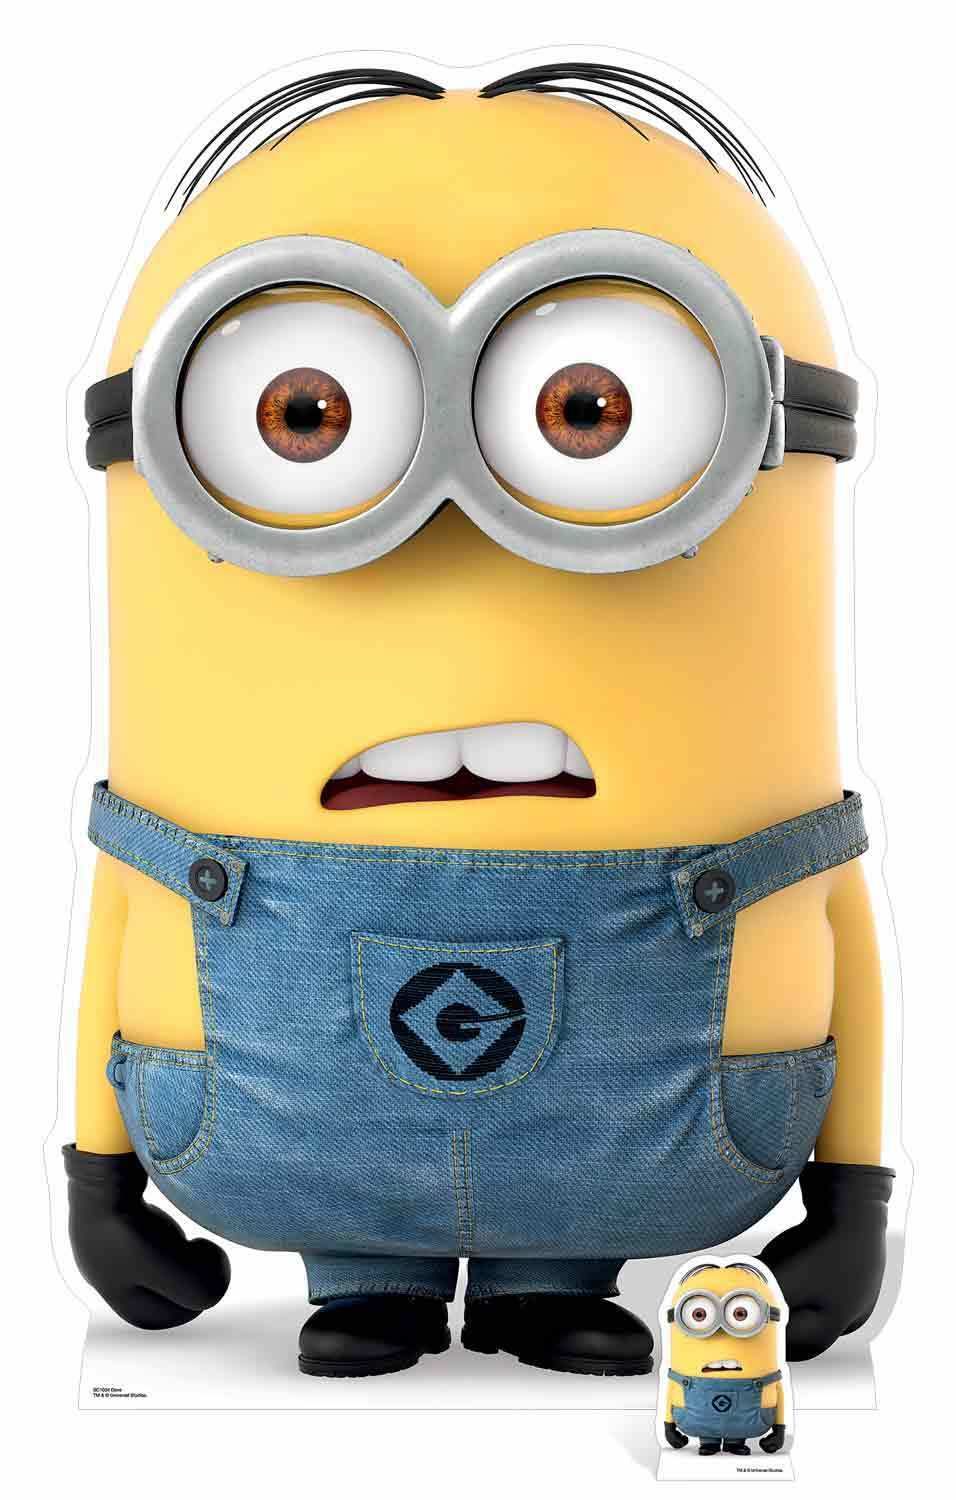 Dave Minion from Despicable Me 3 with Mini Cardboard Cardboard Cardboard Cutout   Stand up Minions ef4cf8